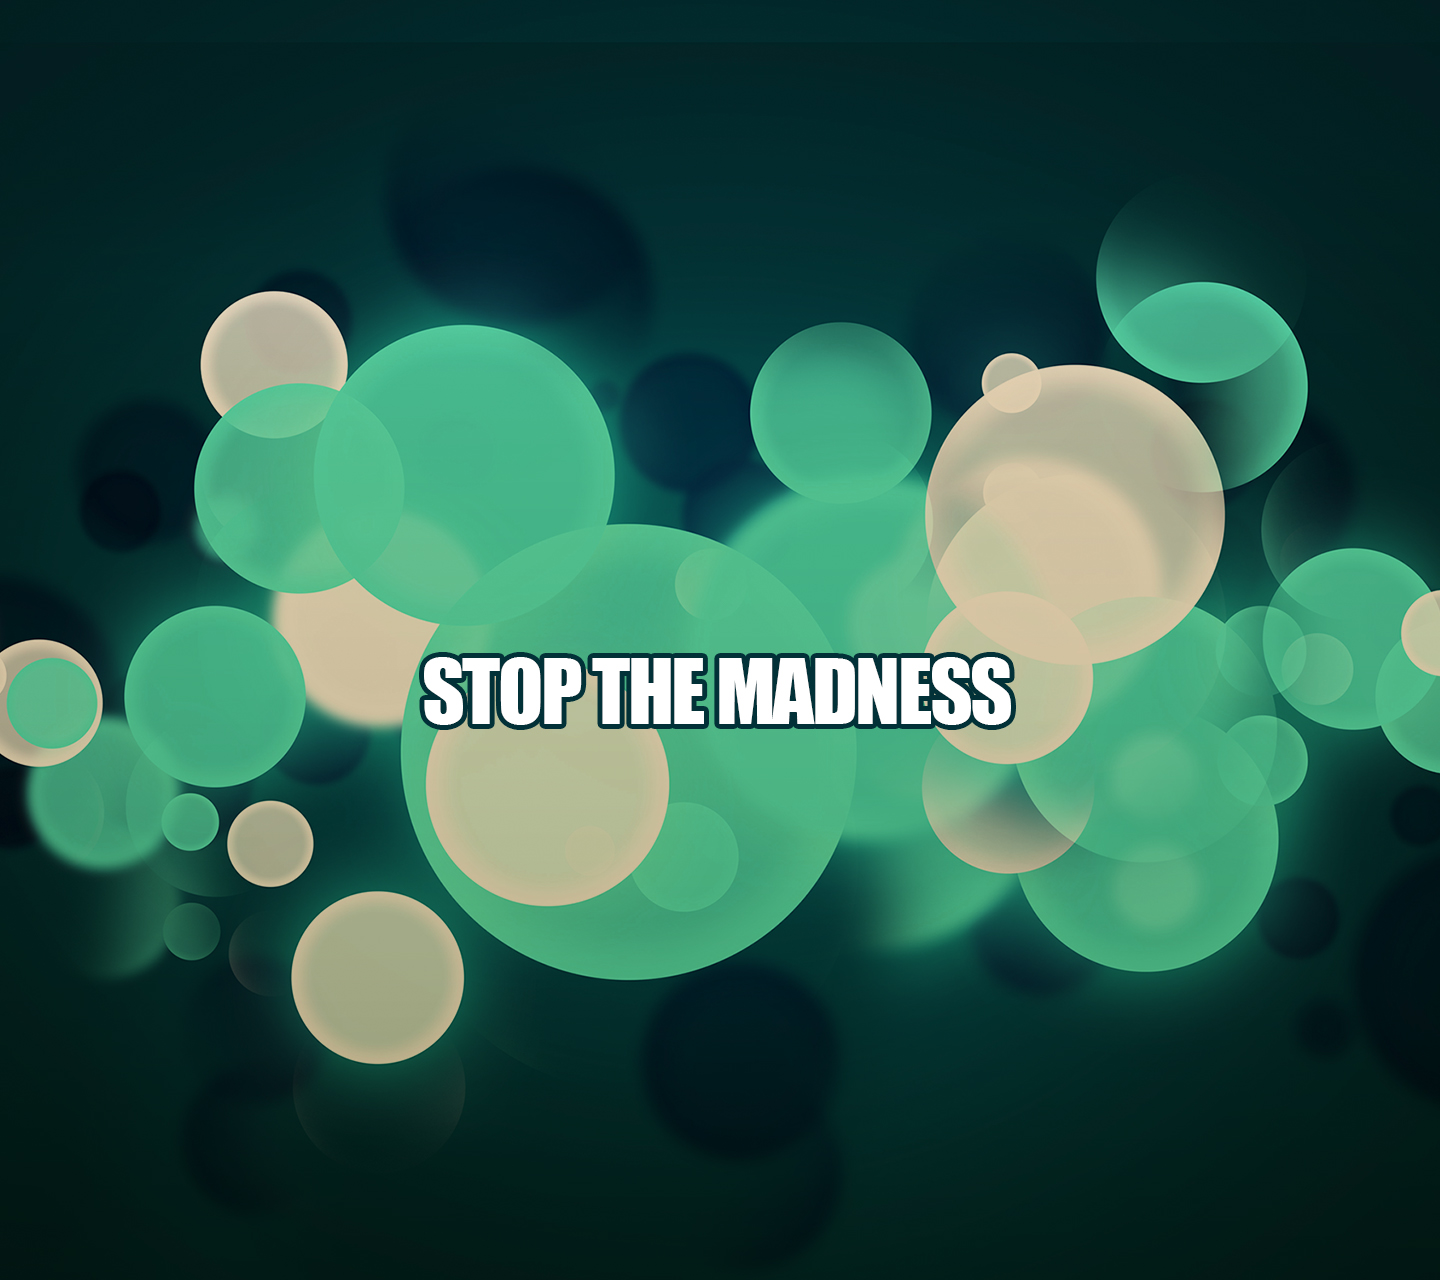 Mobile Wallpapers Quotes On Life Stop The Madness Inspirational Quotes Quotivee